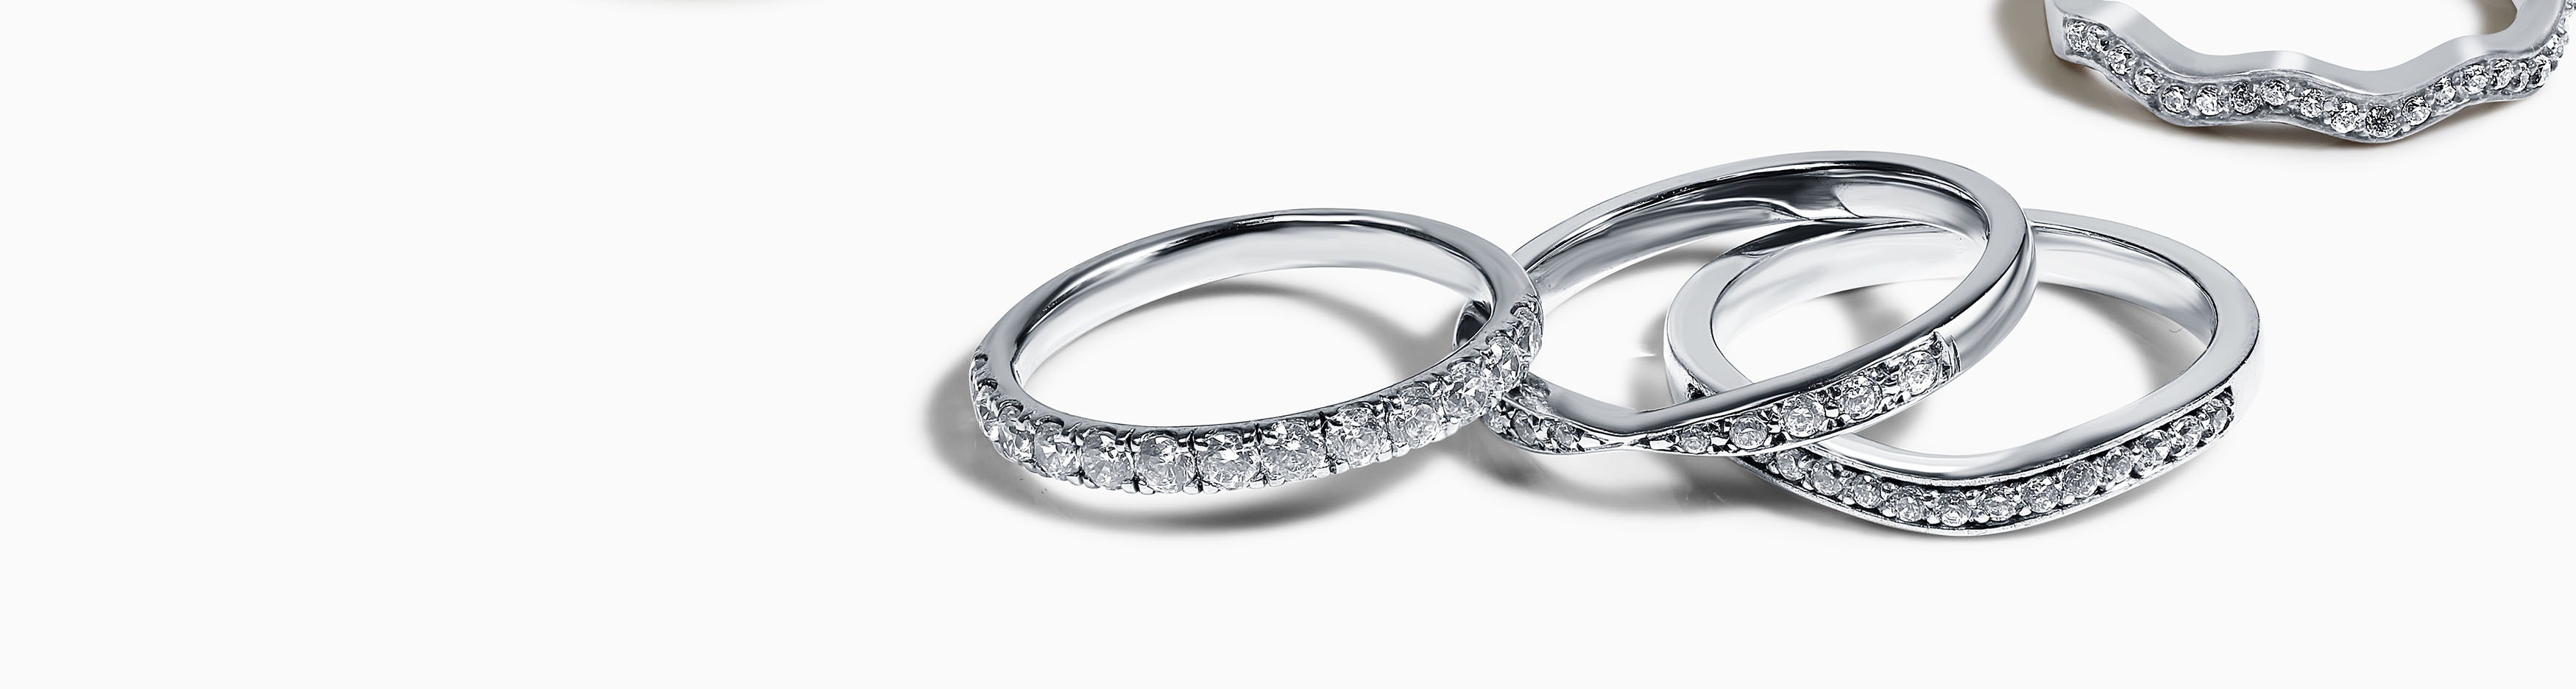 Baguette Diamond Wedding Bands